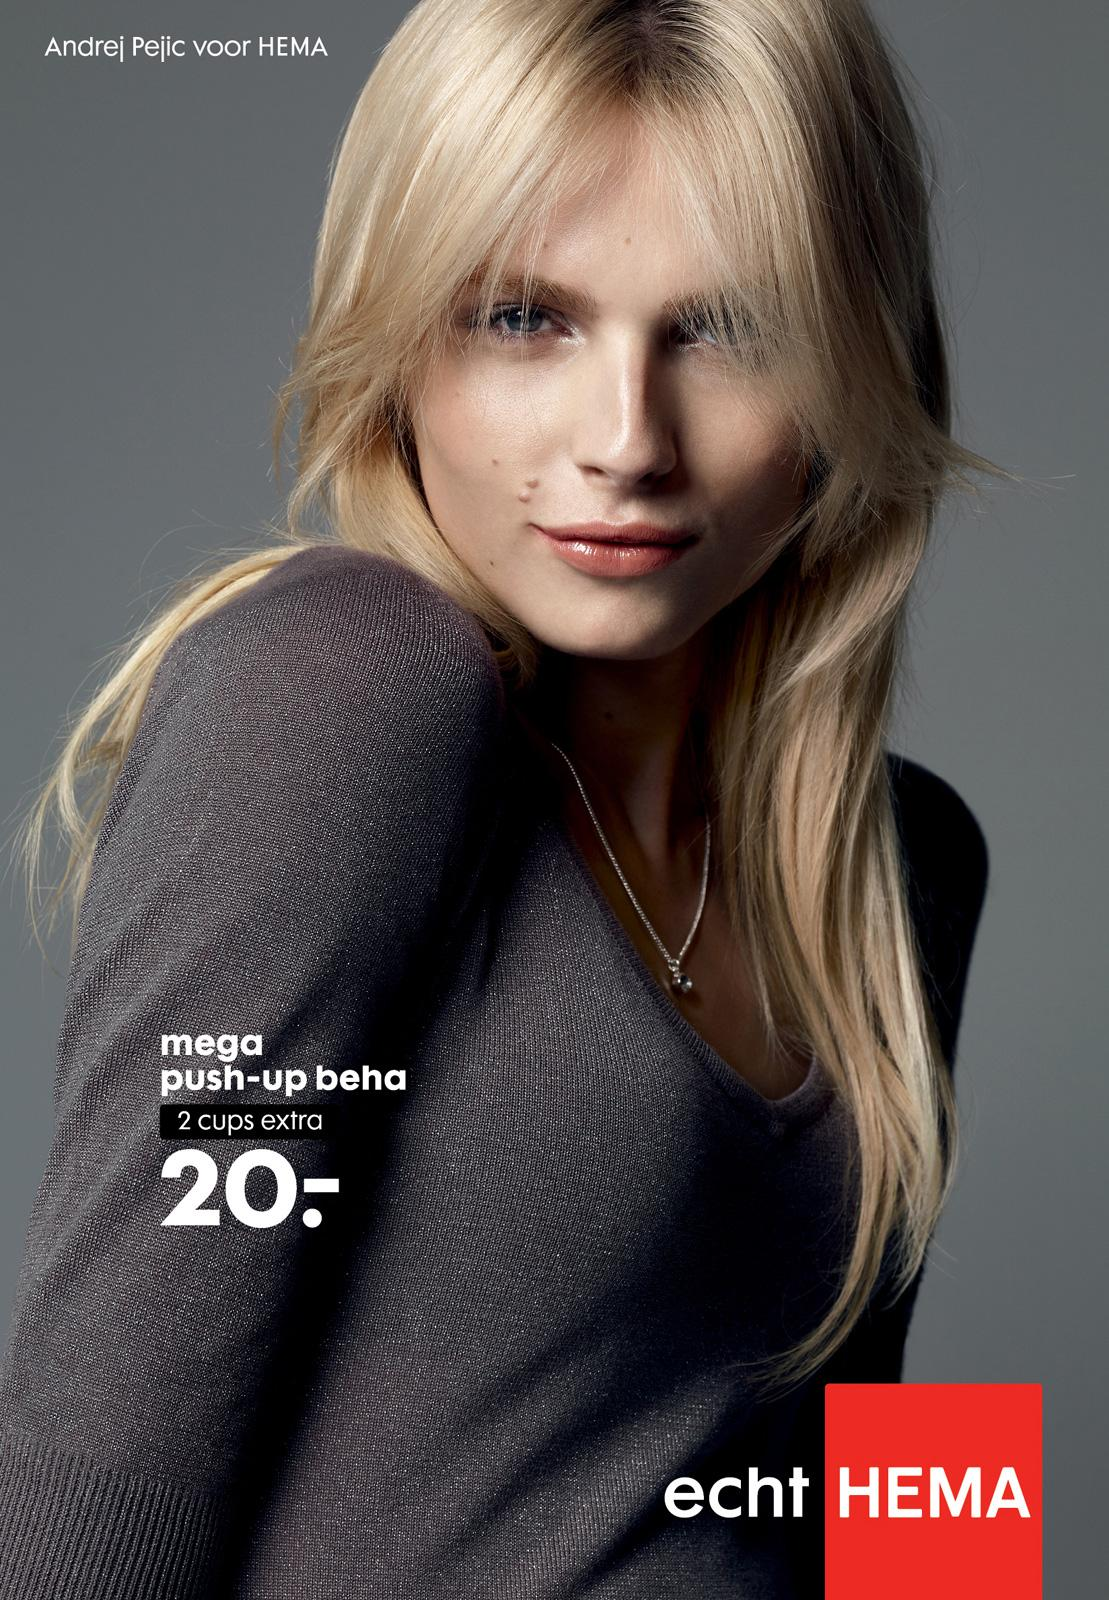 Hema Outdoor Ad -  Push-up bra modelled by Andej Pejic, 2